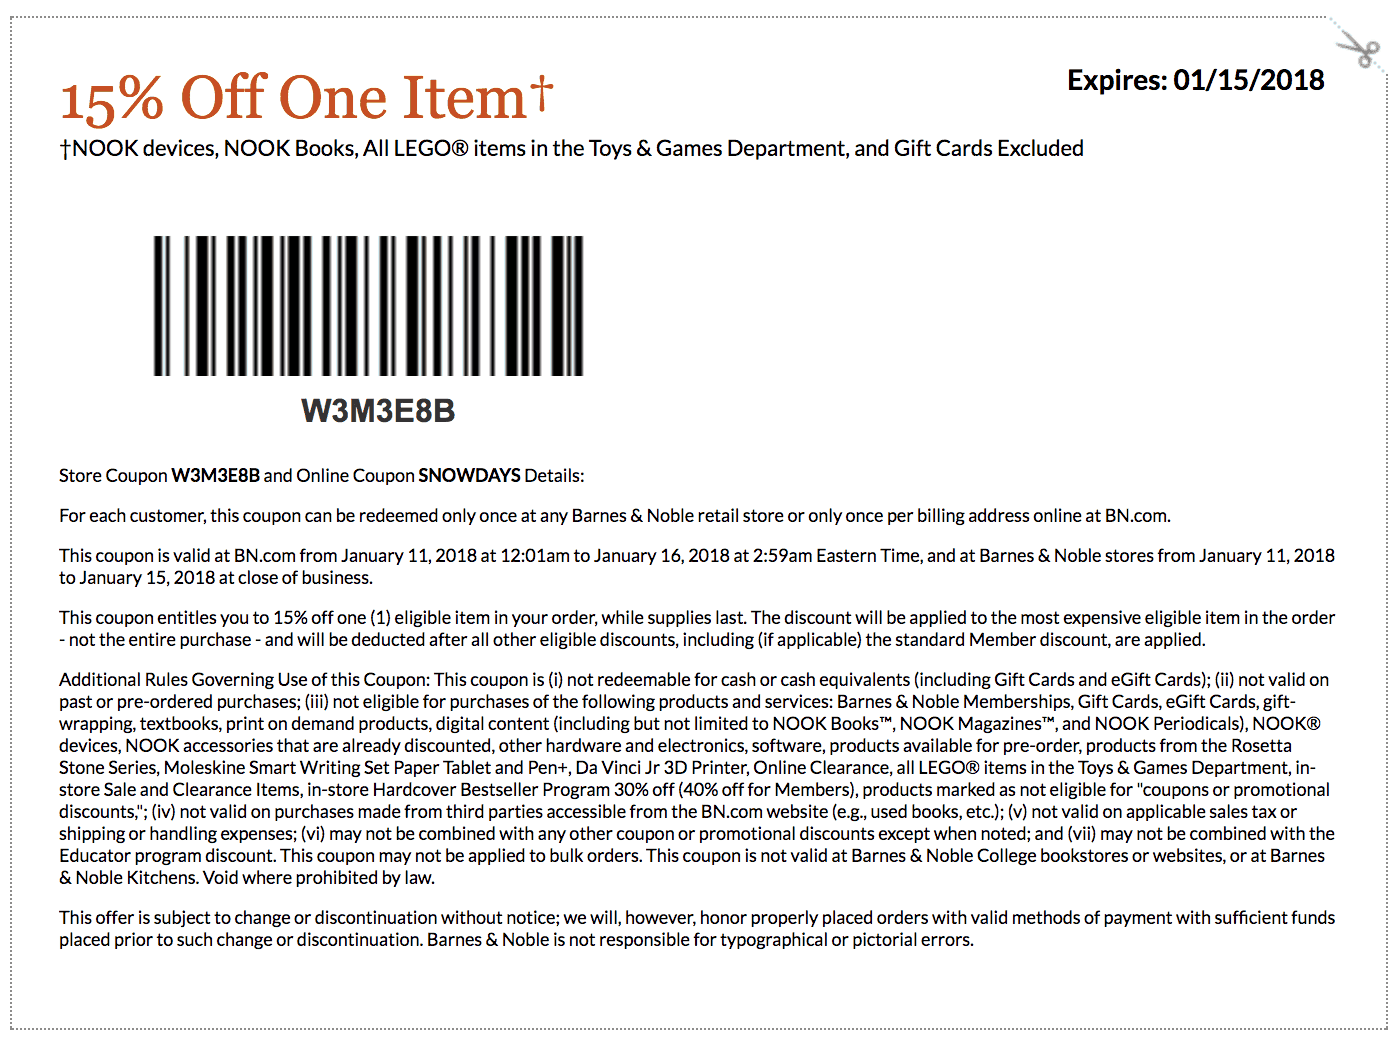 image about Lego Printable Coupon named Barnes and noble discount codes printable 2018 : Oct 2018 Retail store